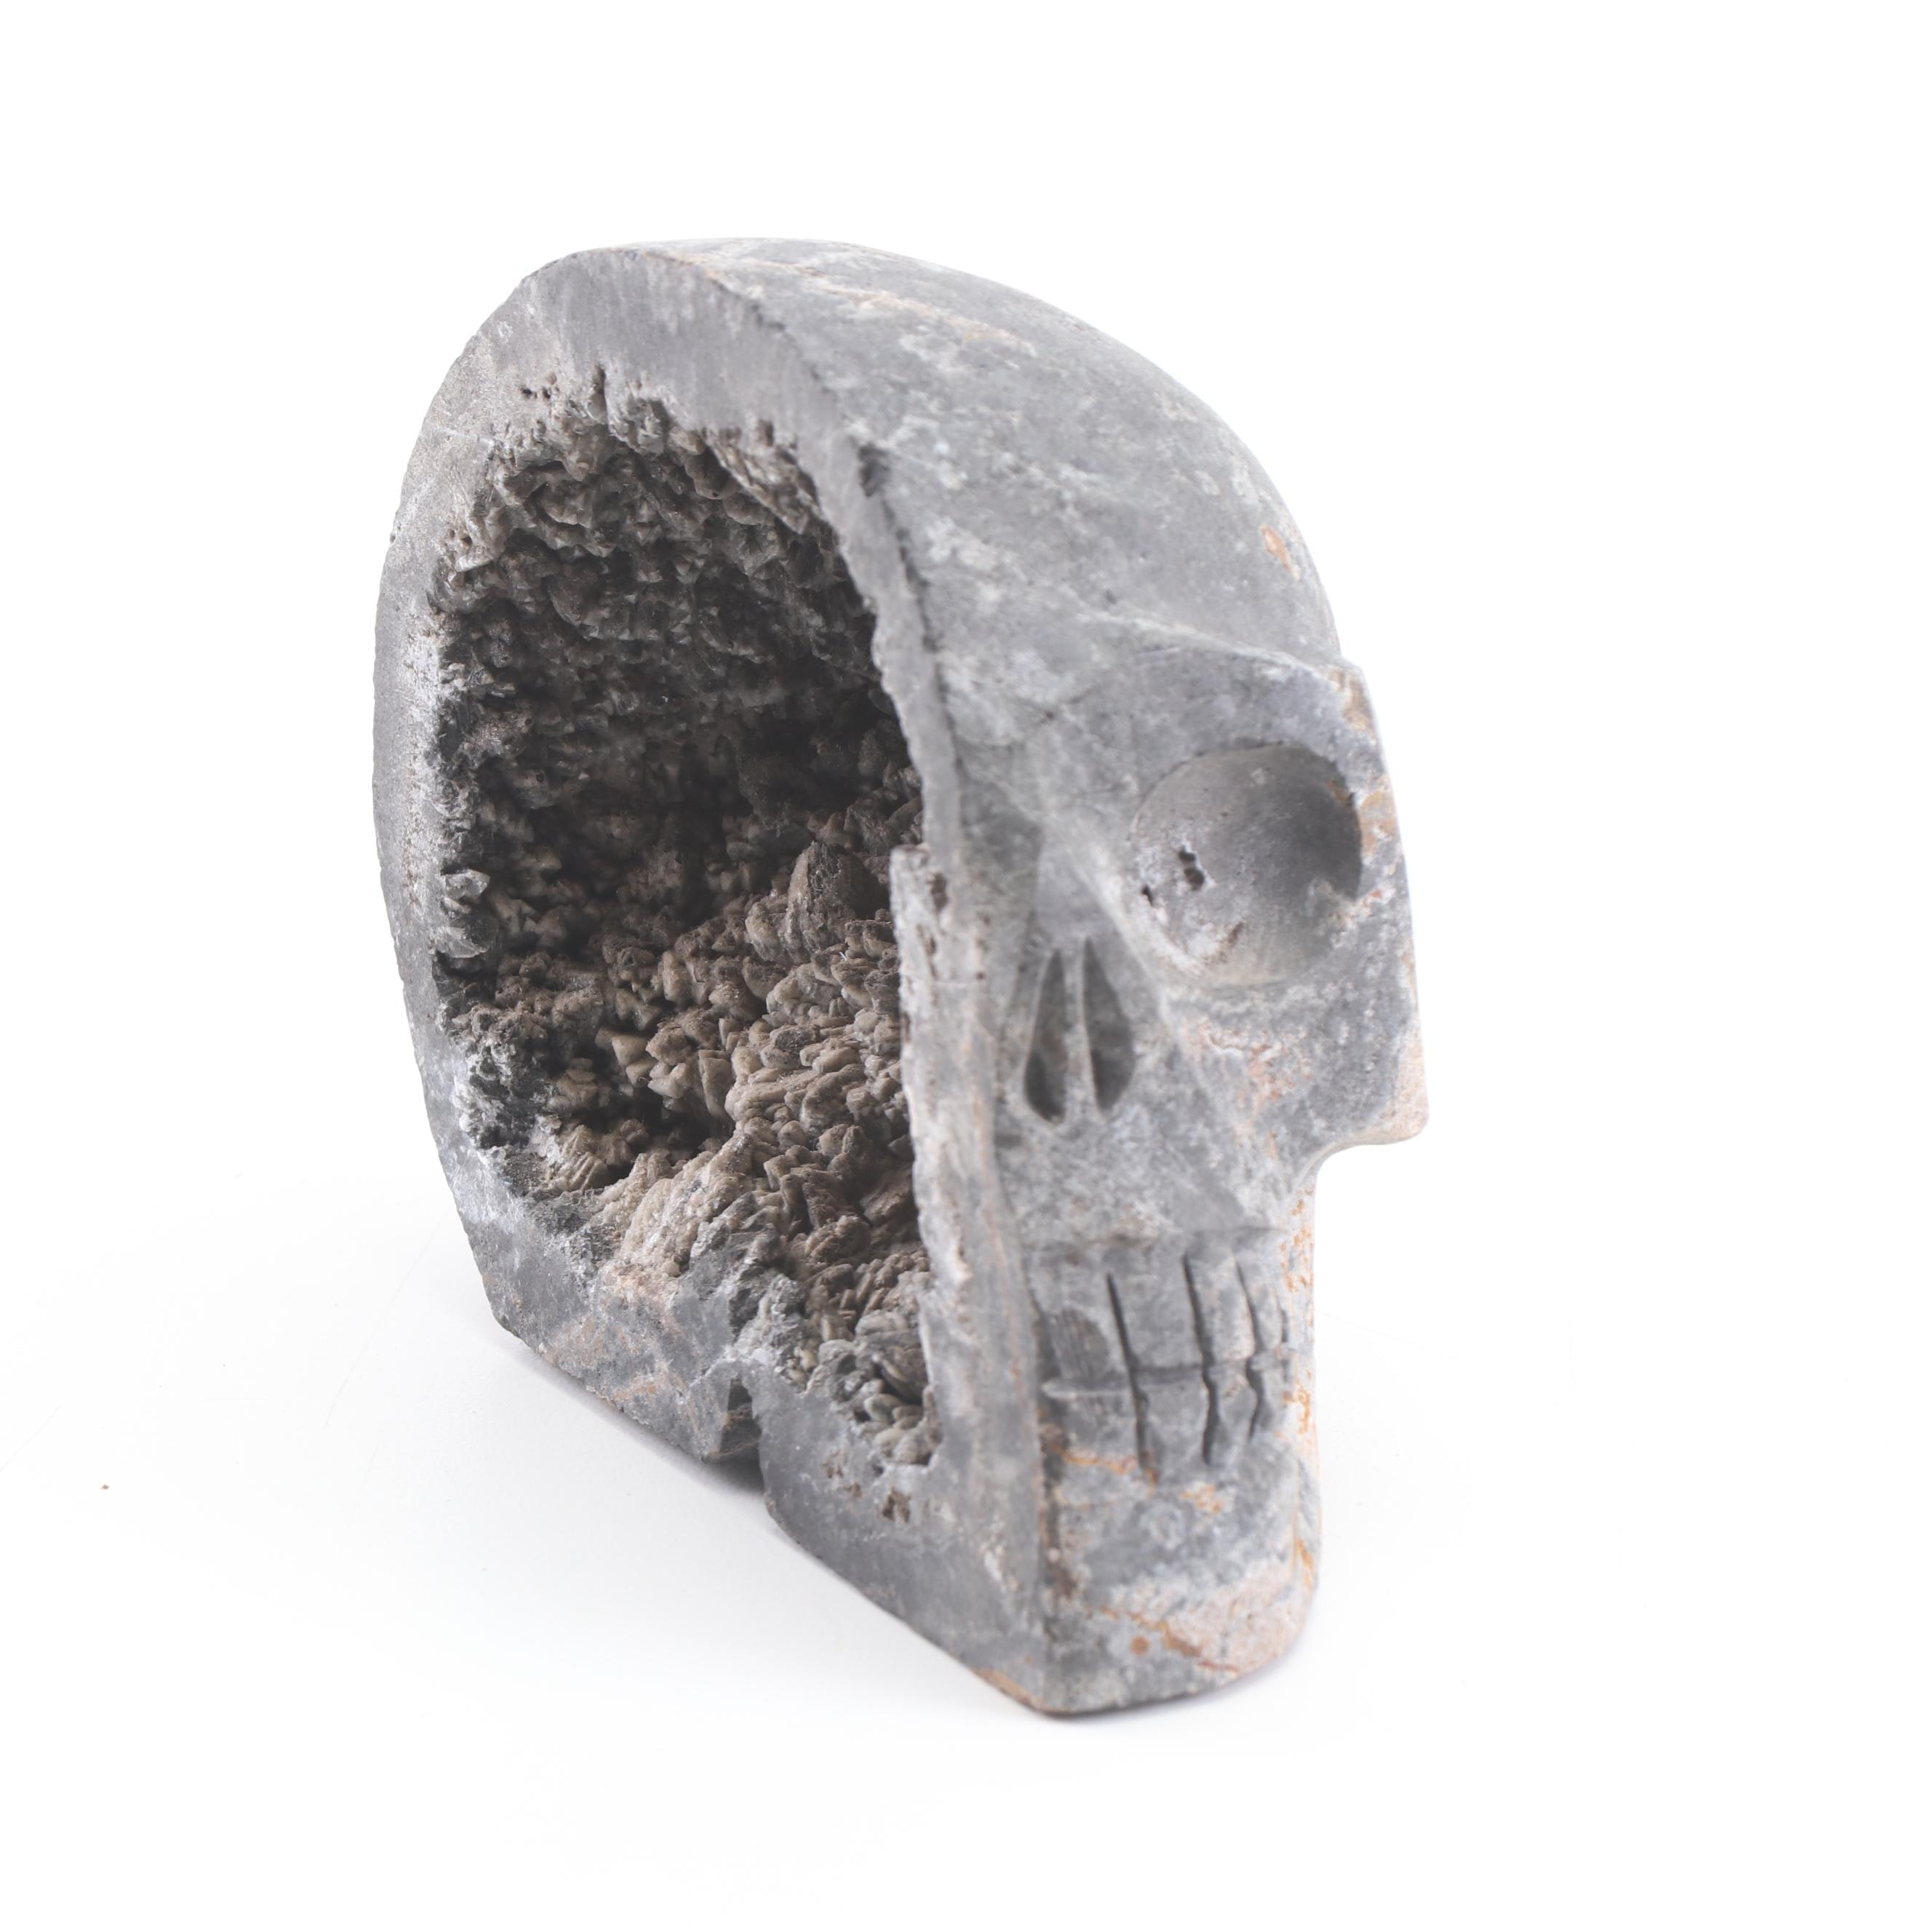 Carved Smoky Quartz Geode Skull